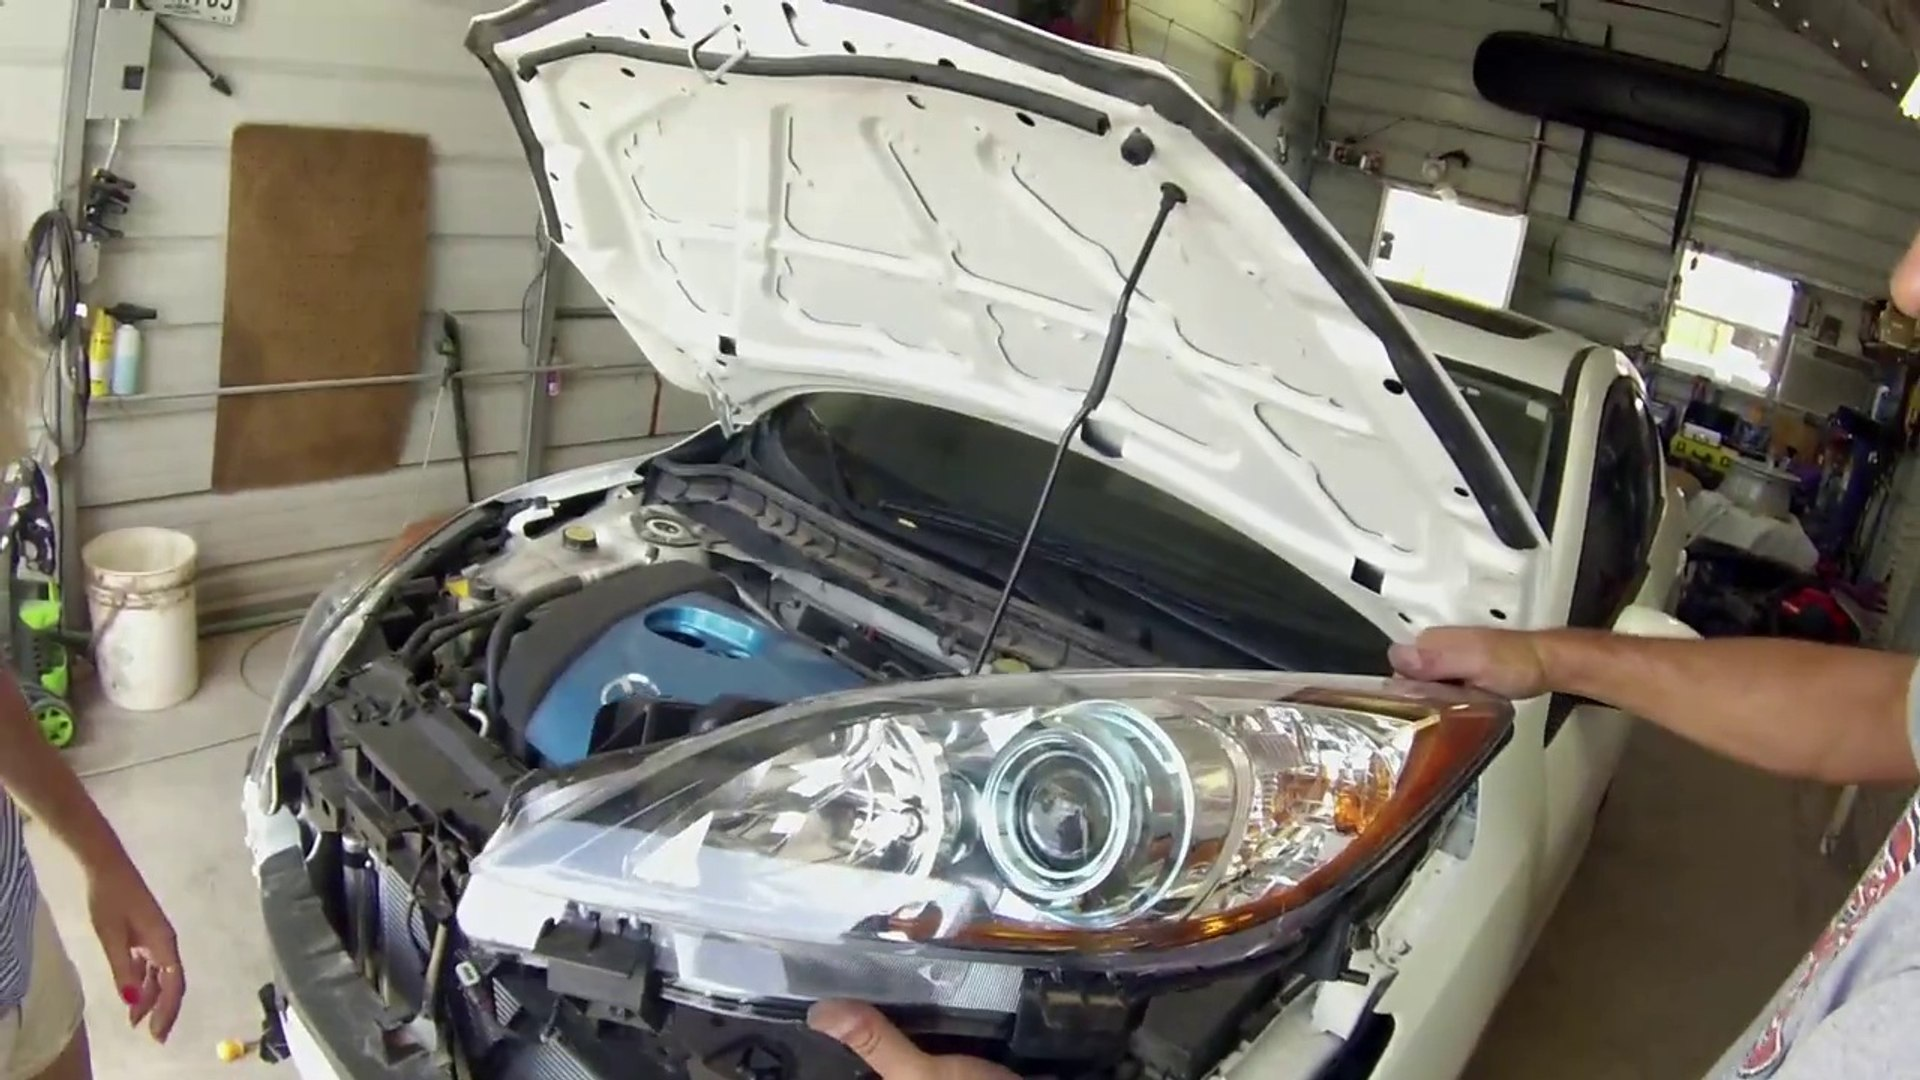 Mazda 3 Headlight Removal And Replacement 2010 2011 2012 2013 Video Dailymotion